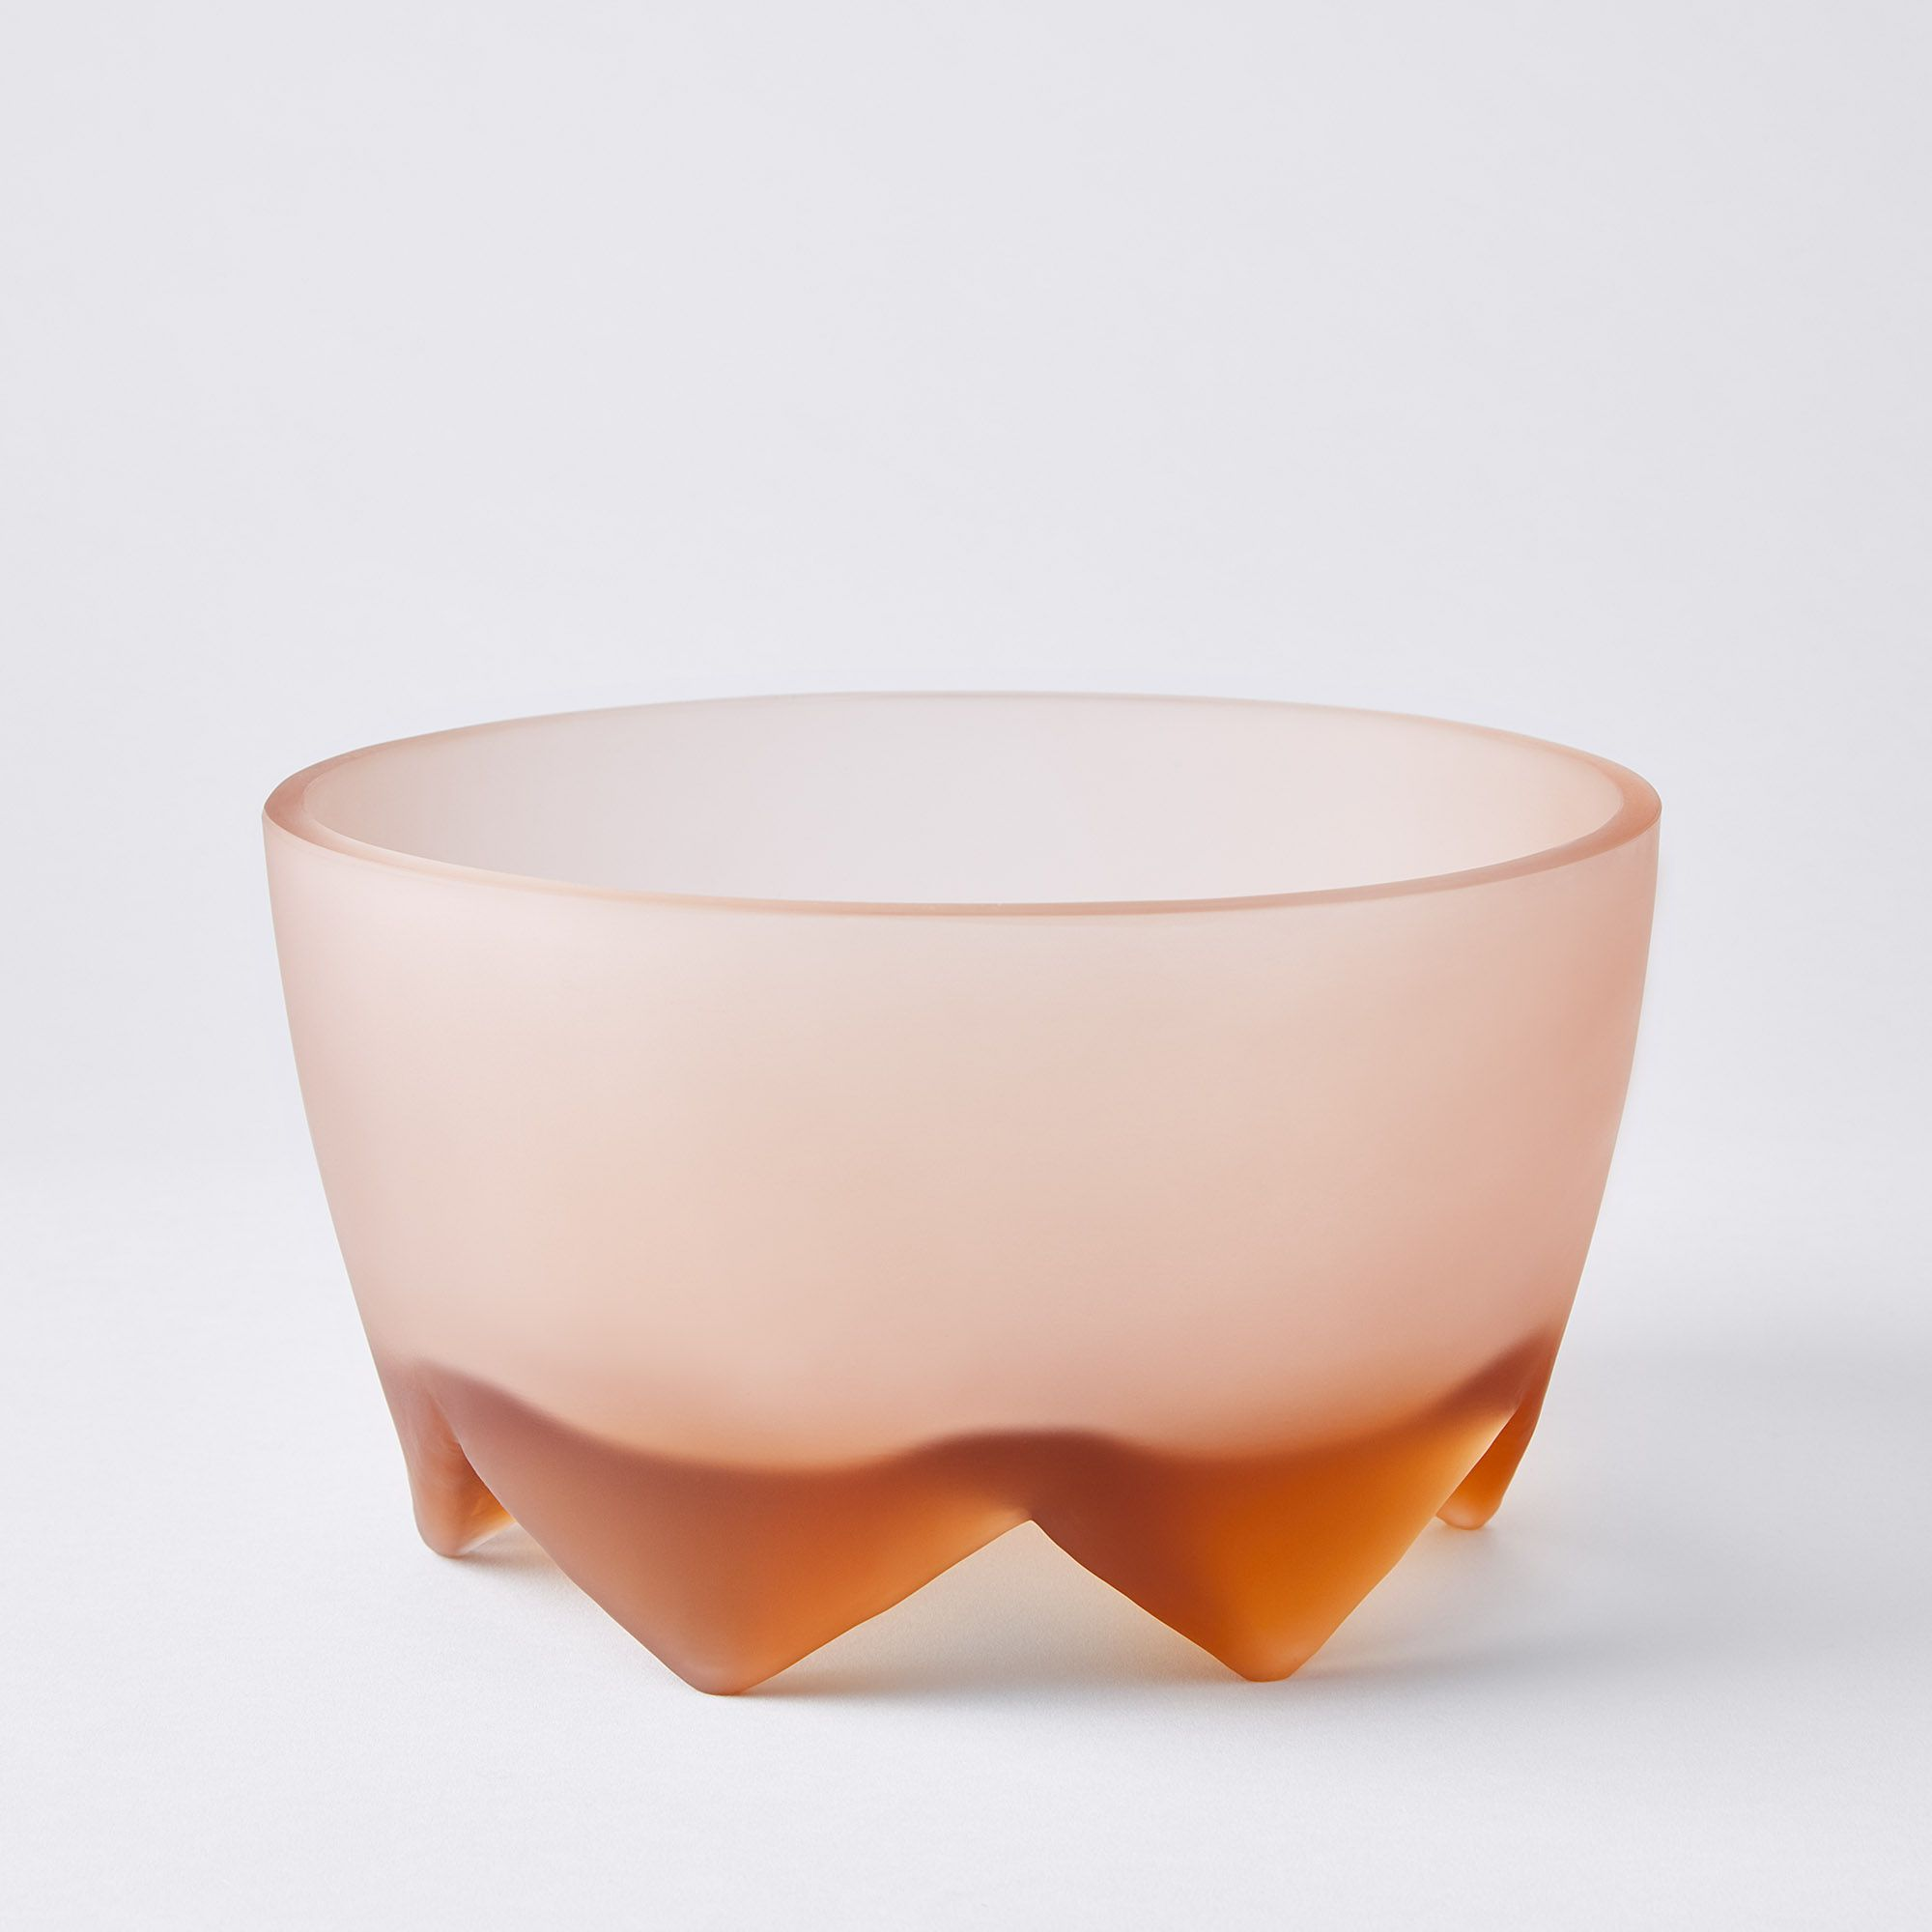 Hawkins New York Frosted Glass Footed Bowl - Large, Blush